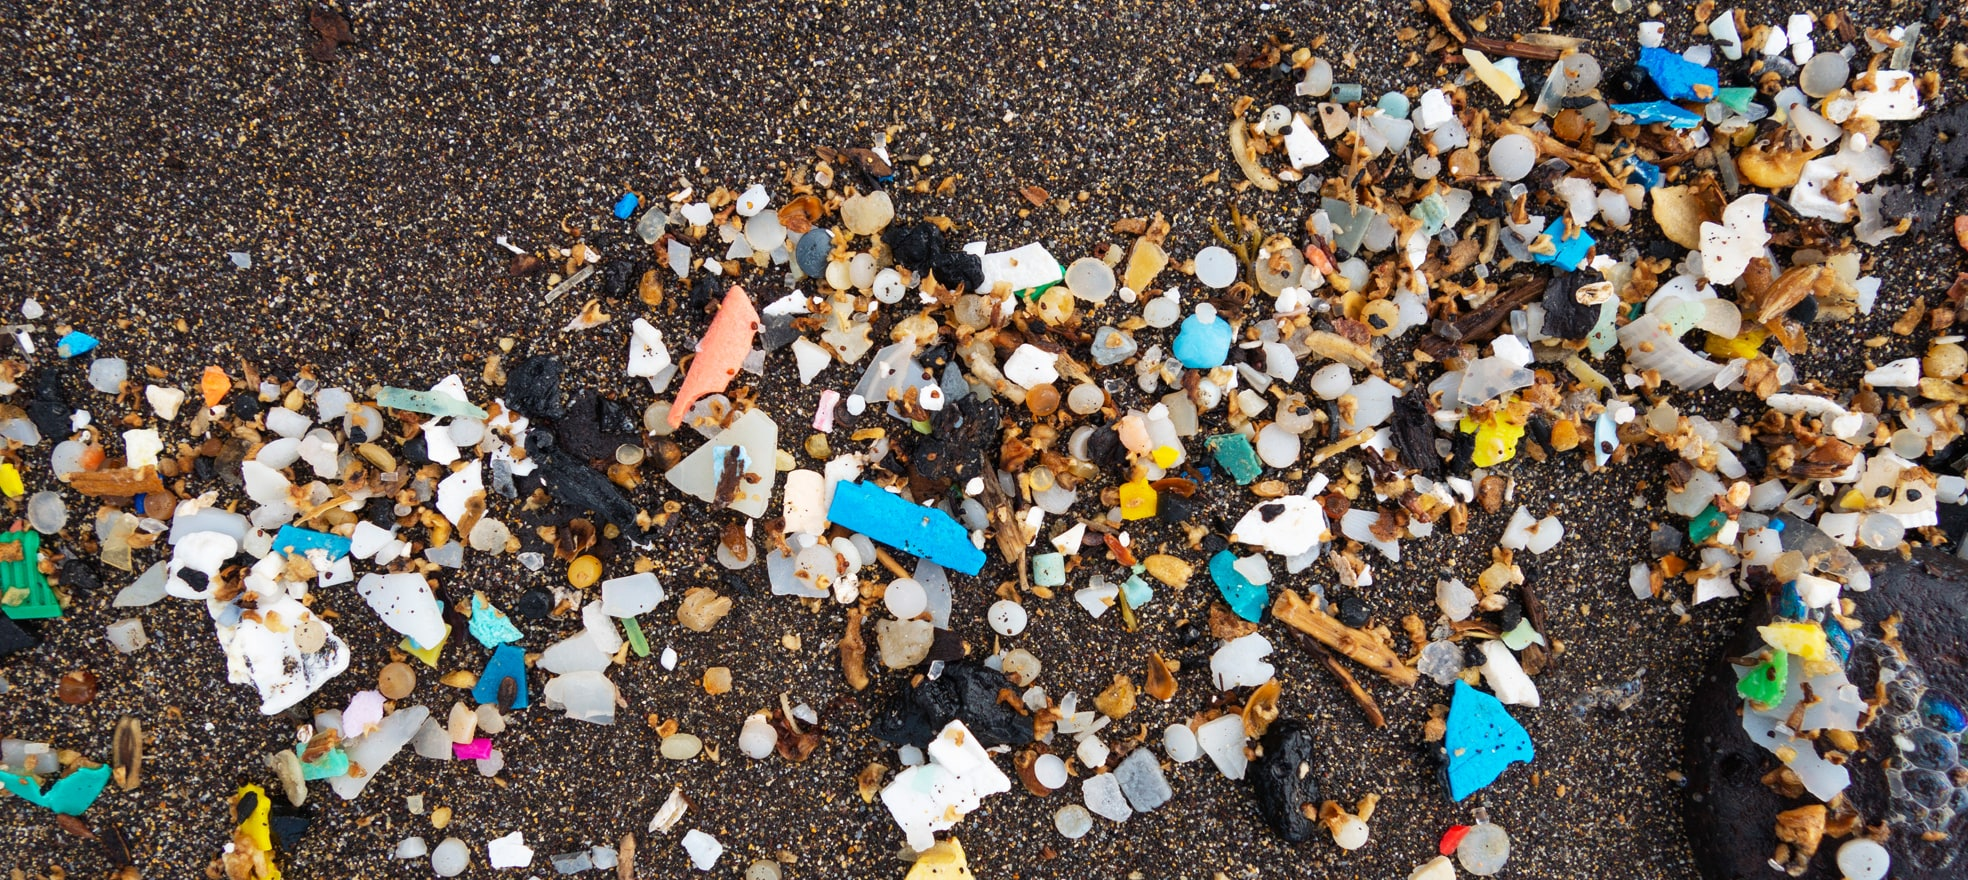 Bits of plastic on a sandy beach.